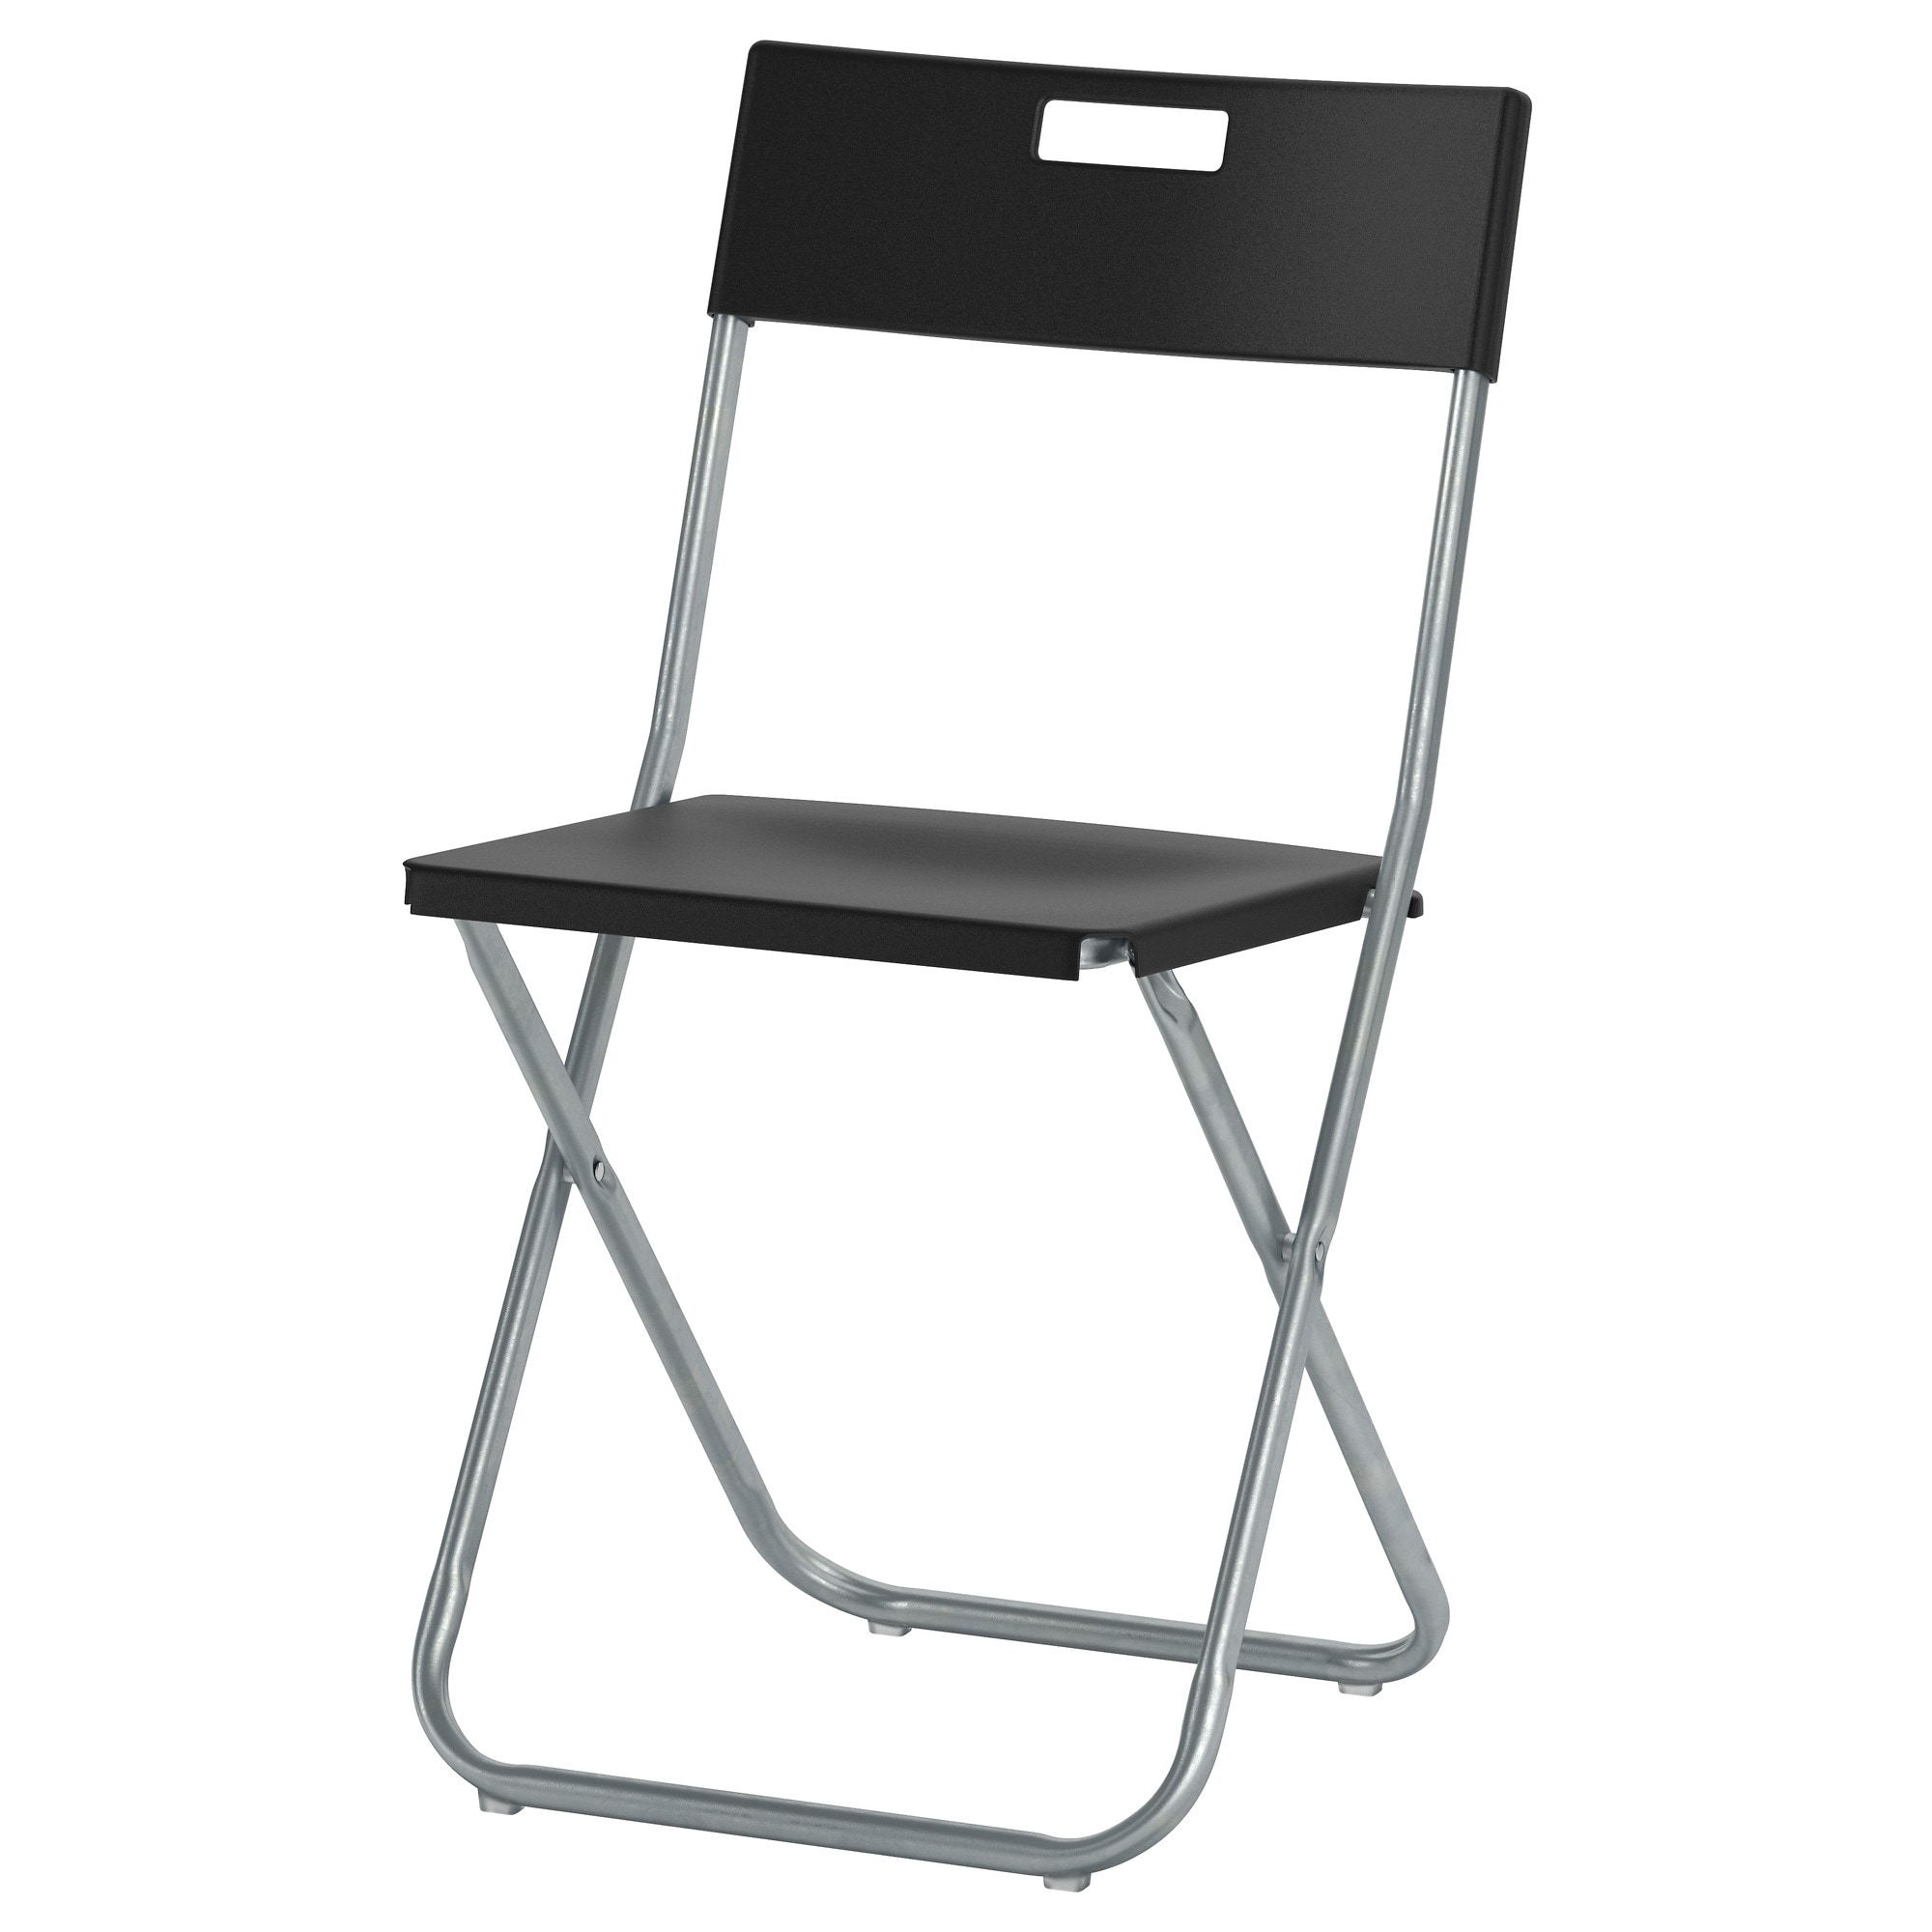 Black chair and white chair - Gunde Folding Chair Black Tested For 220 Lb Width 16 1 8